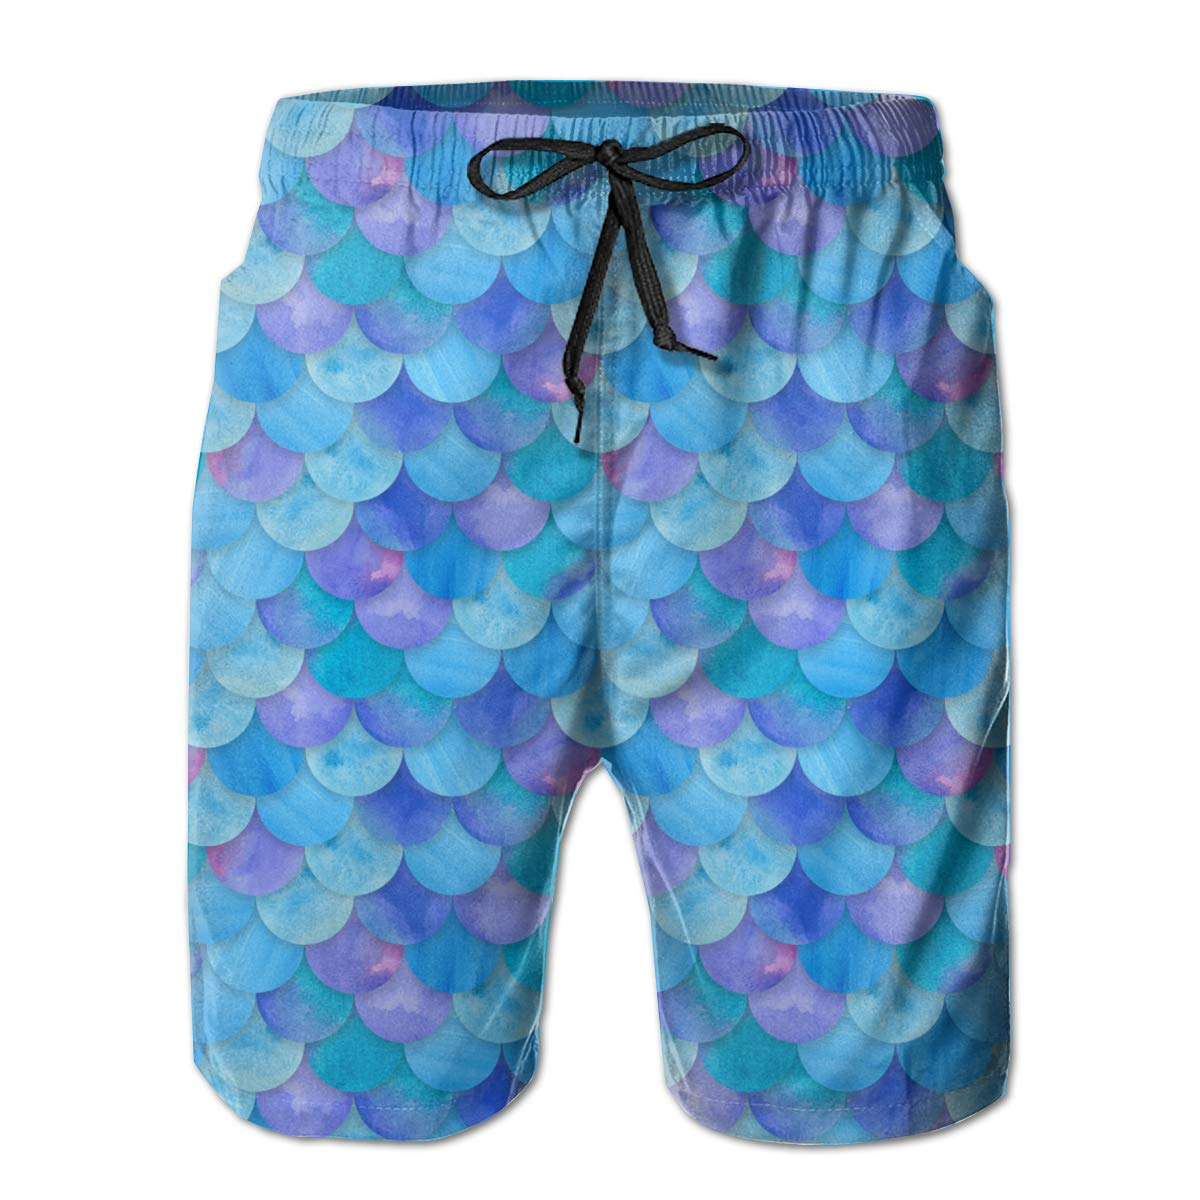 RolandraceMermaid Print Scales Patterns Mens Swim Trunks Quick Dry Bathing Suits Beach Holiday Party Board Shorts